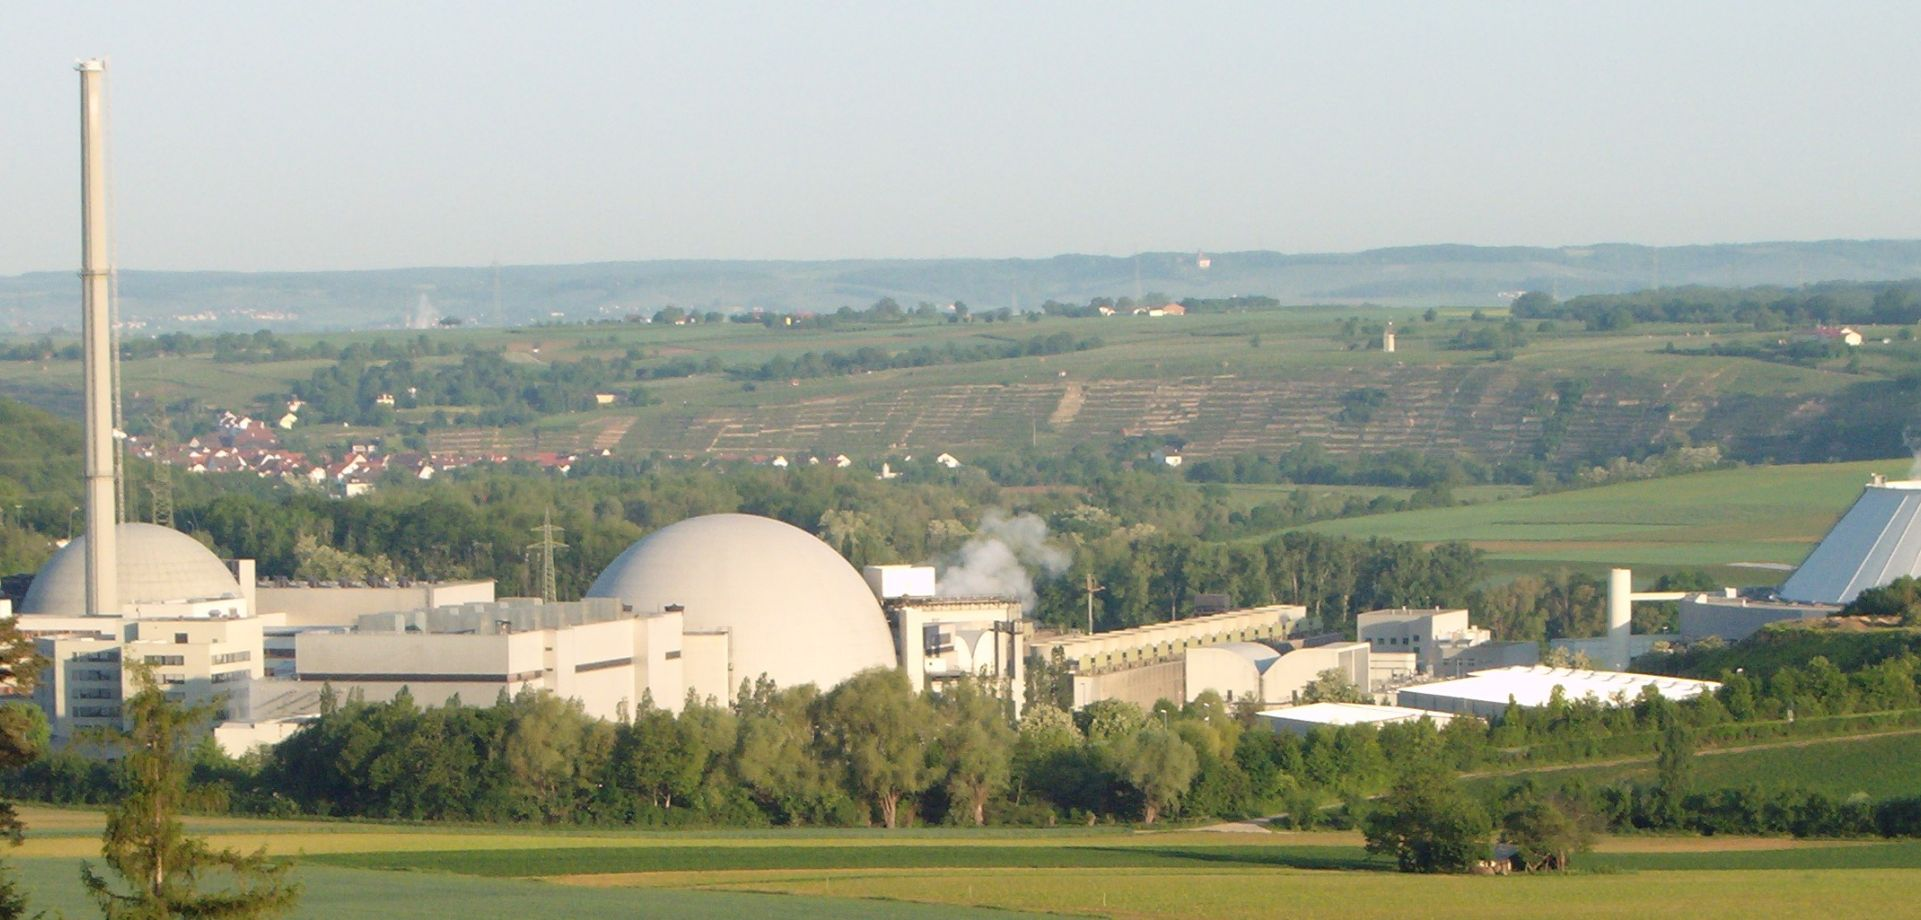 The nuclear power plant Neckarwestheim 1